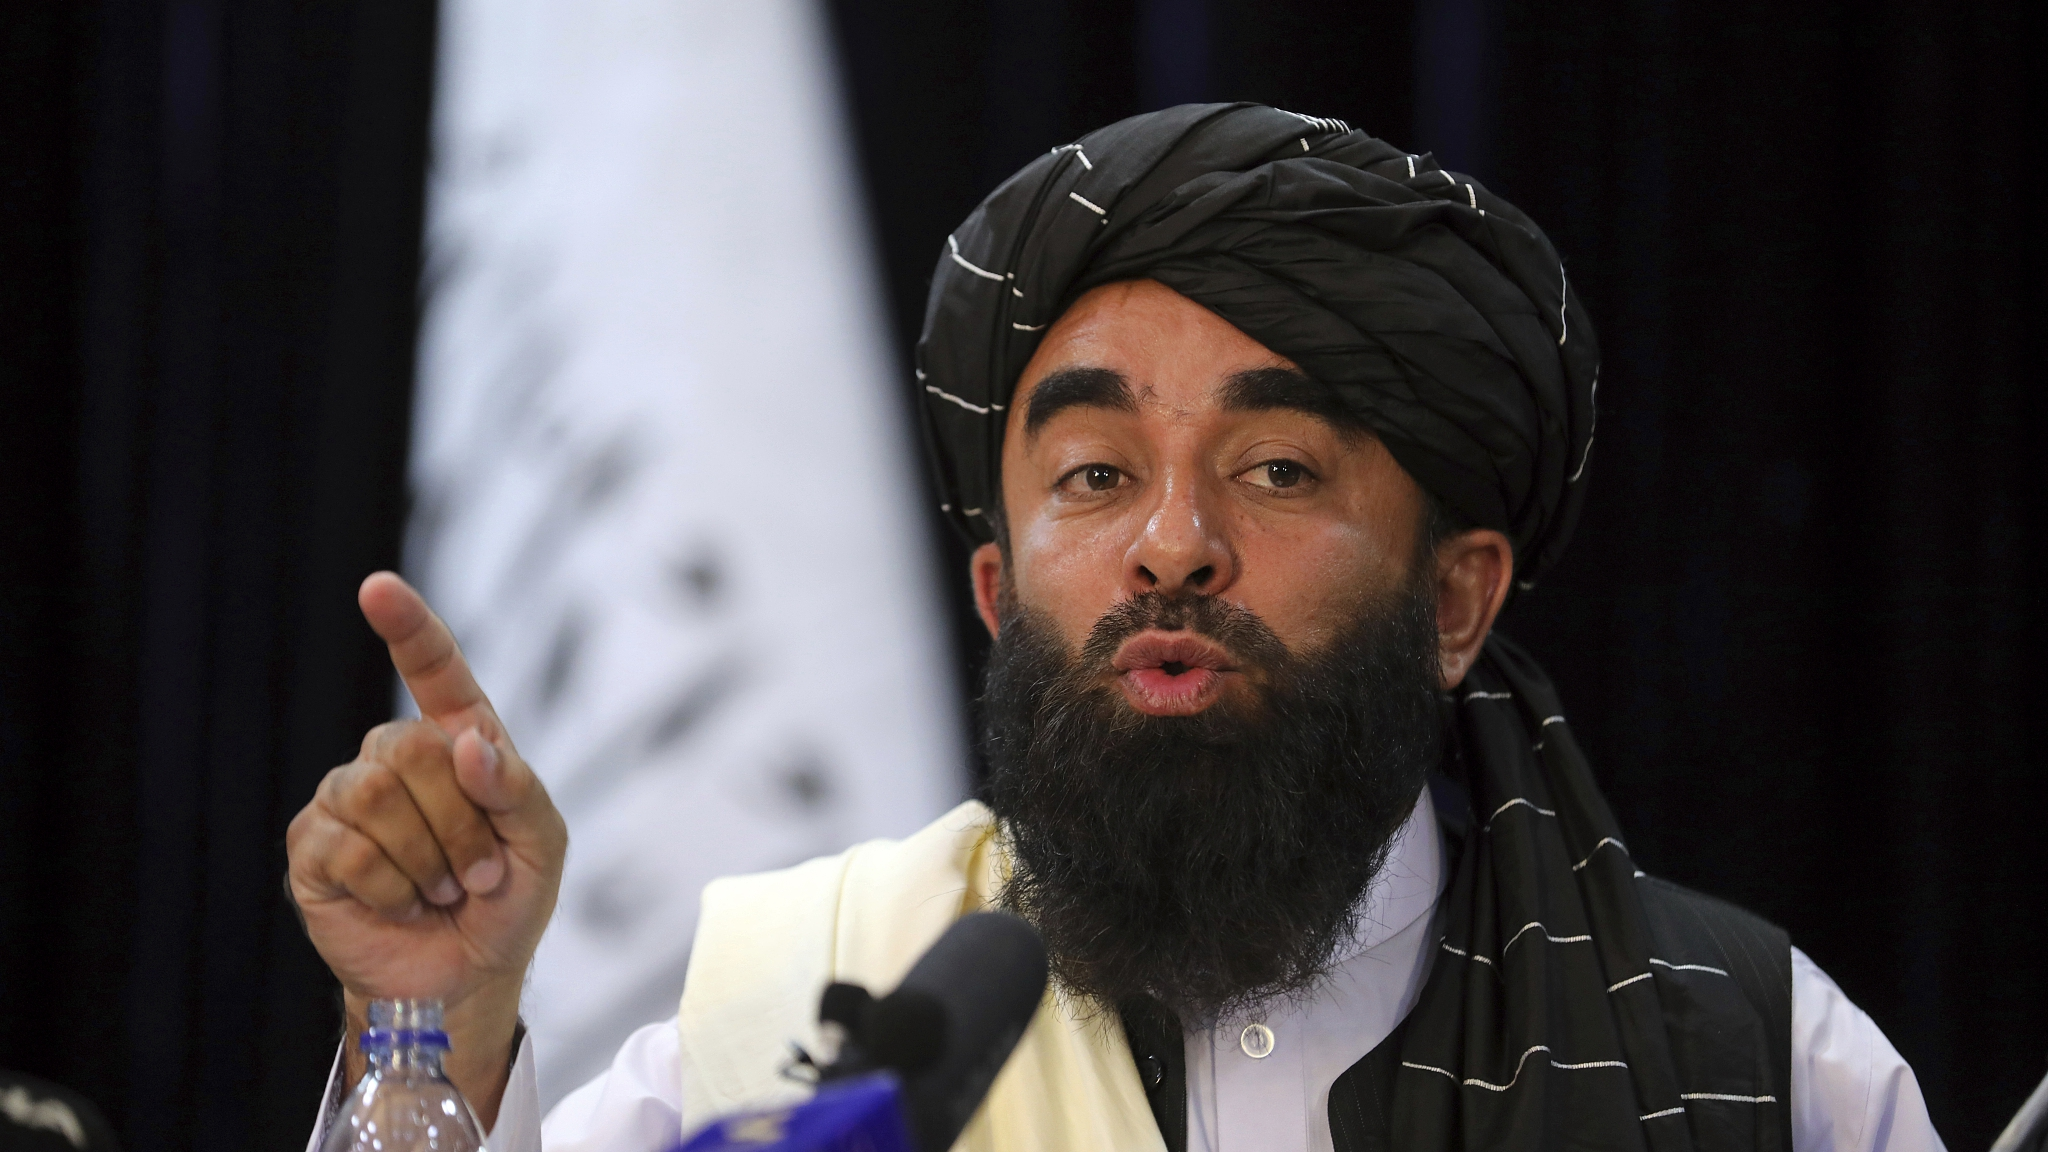 Taliban announces expansion of new cabinet with no women representation